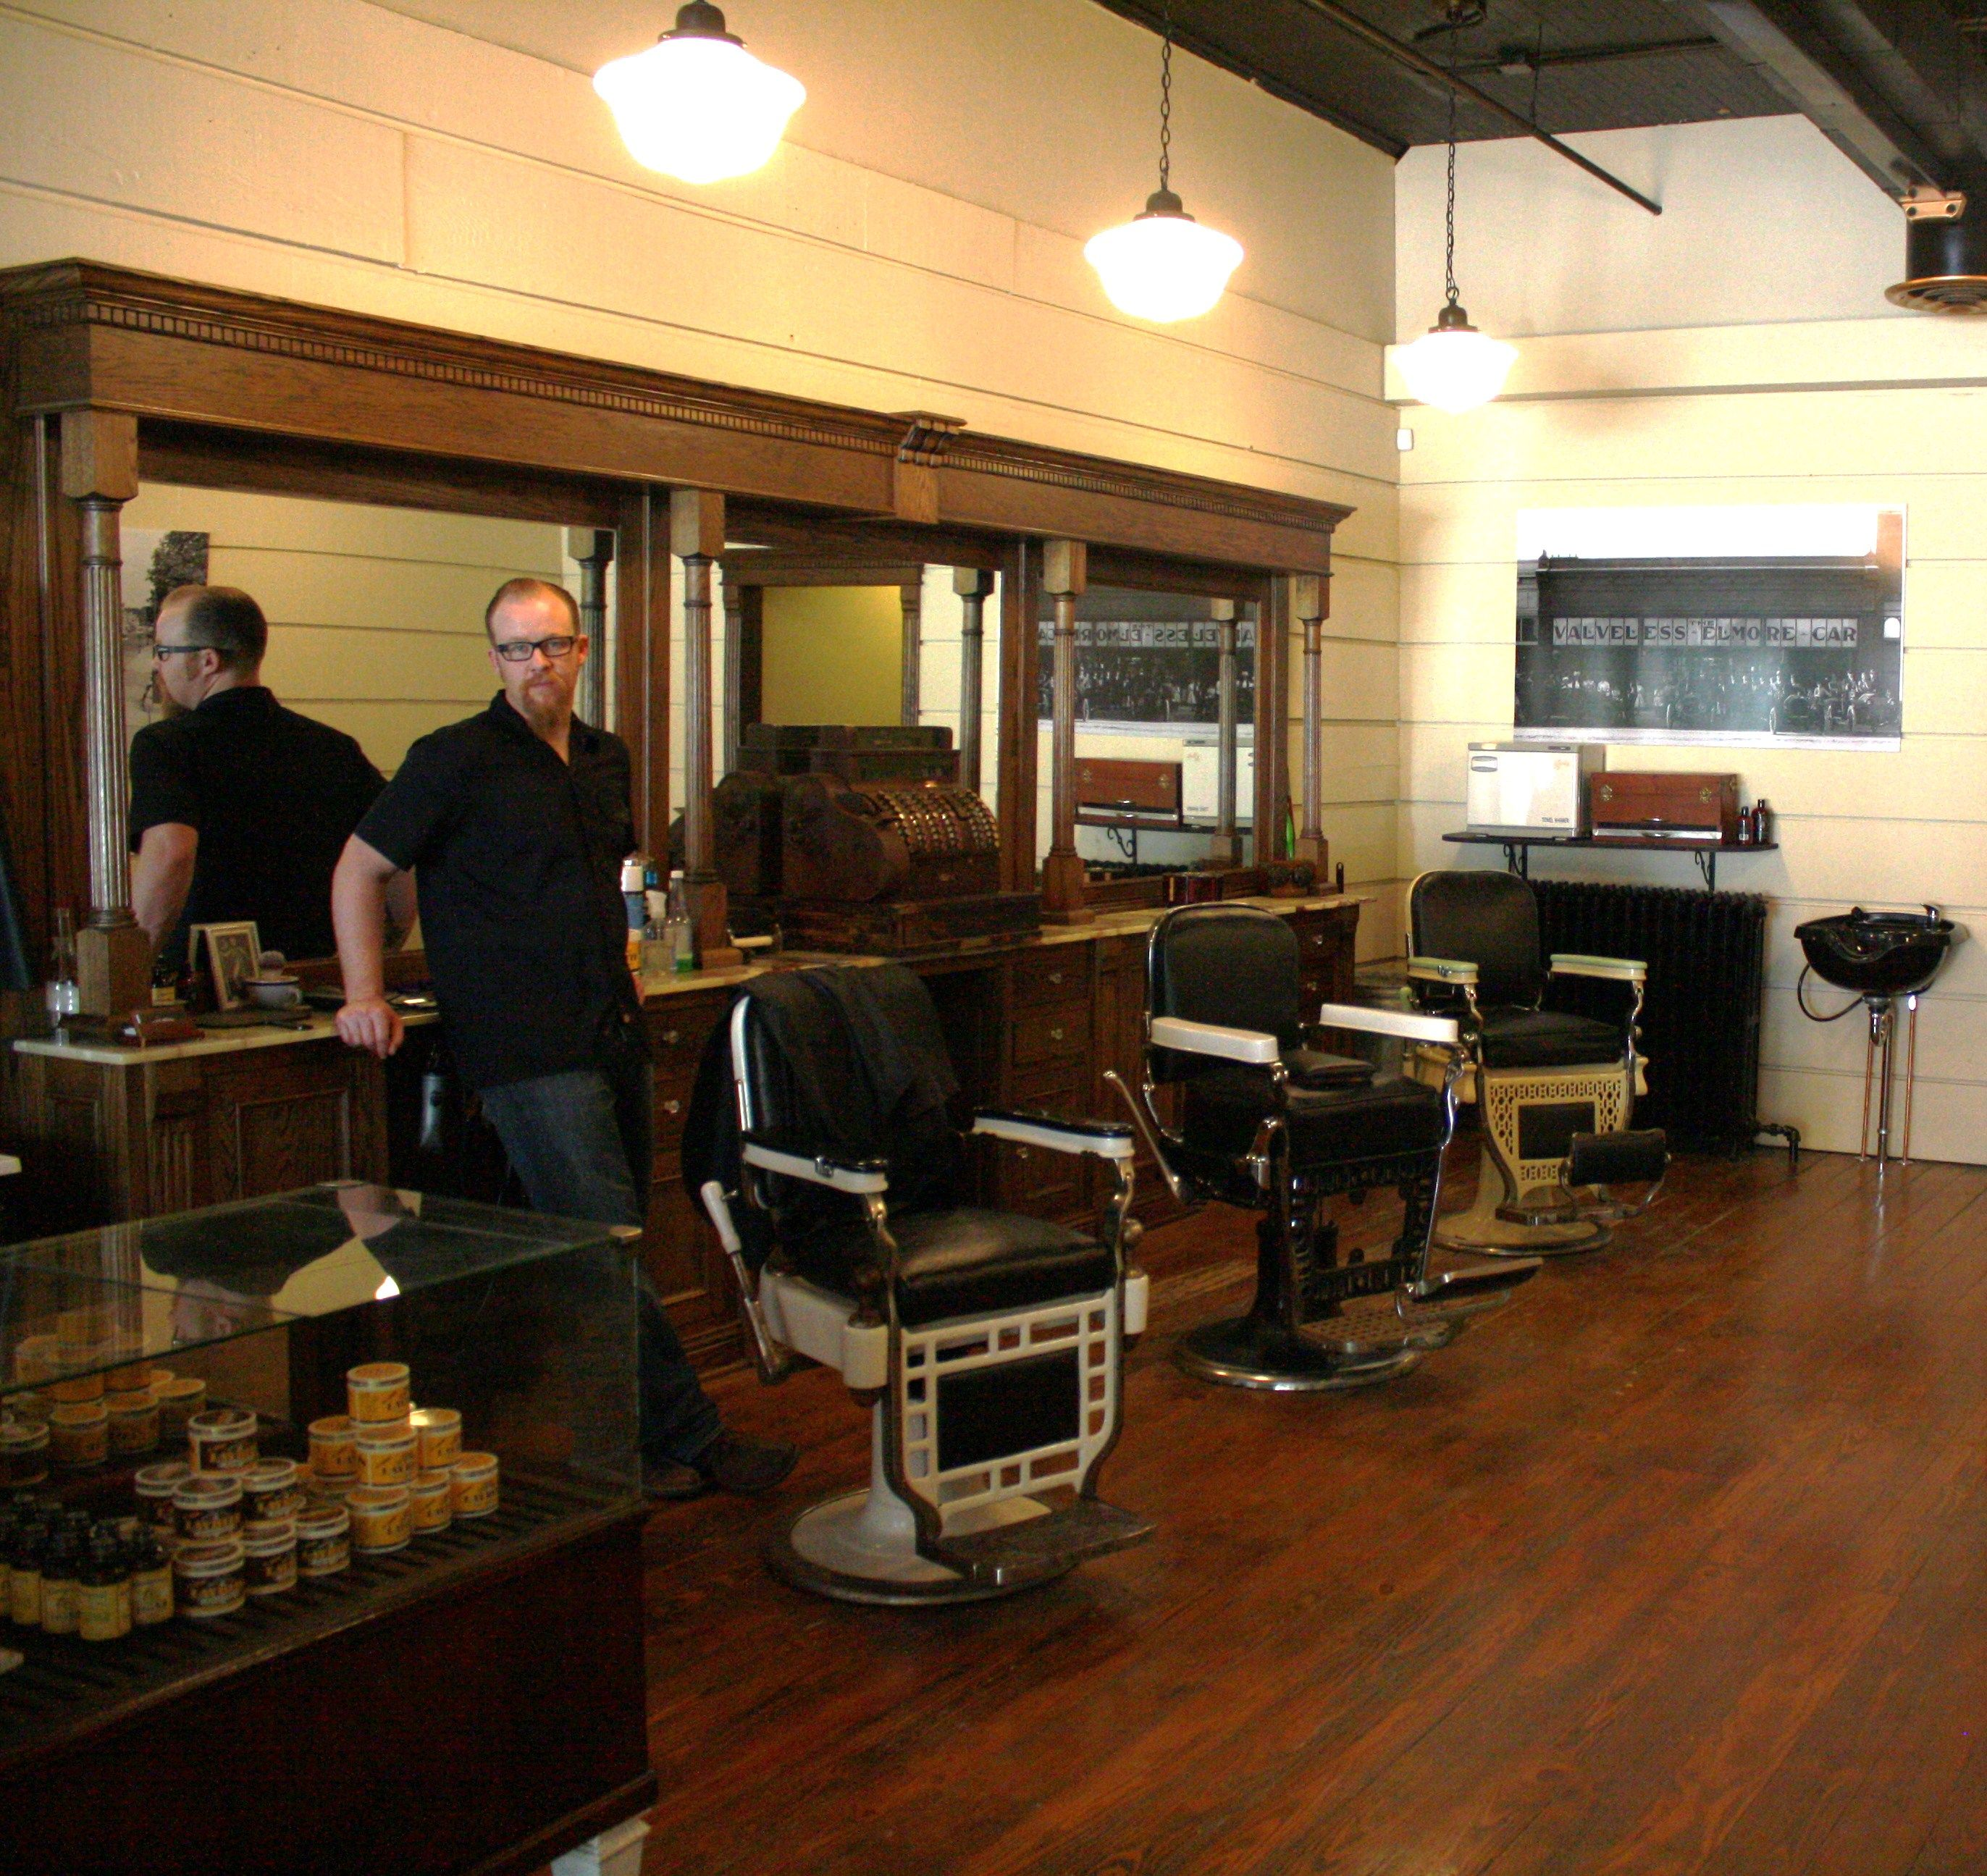 traditional barbershop opens across from courthouse in downtown laporte barbershop pinterest. Black Bedroom Furniture Sets. Home Design Ideas